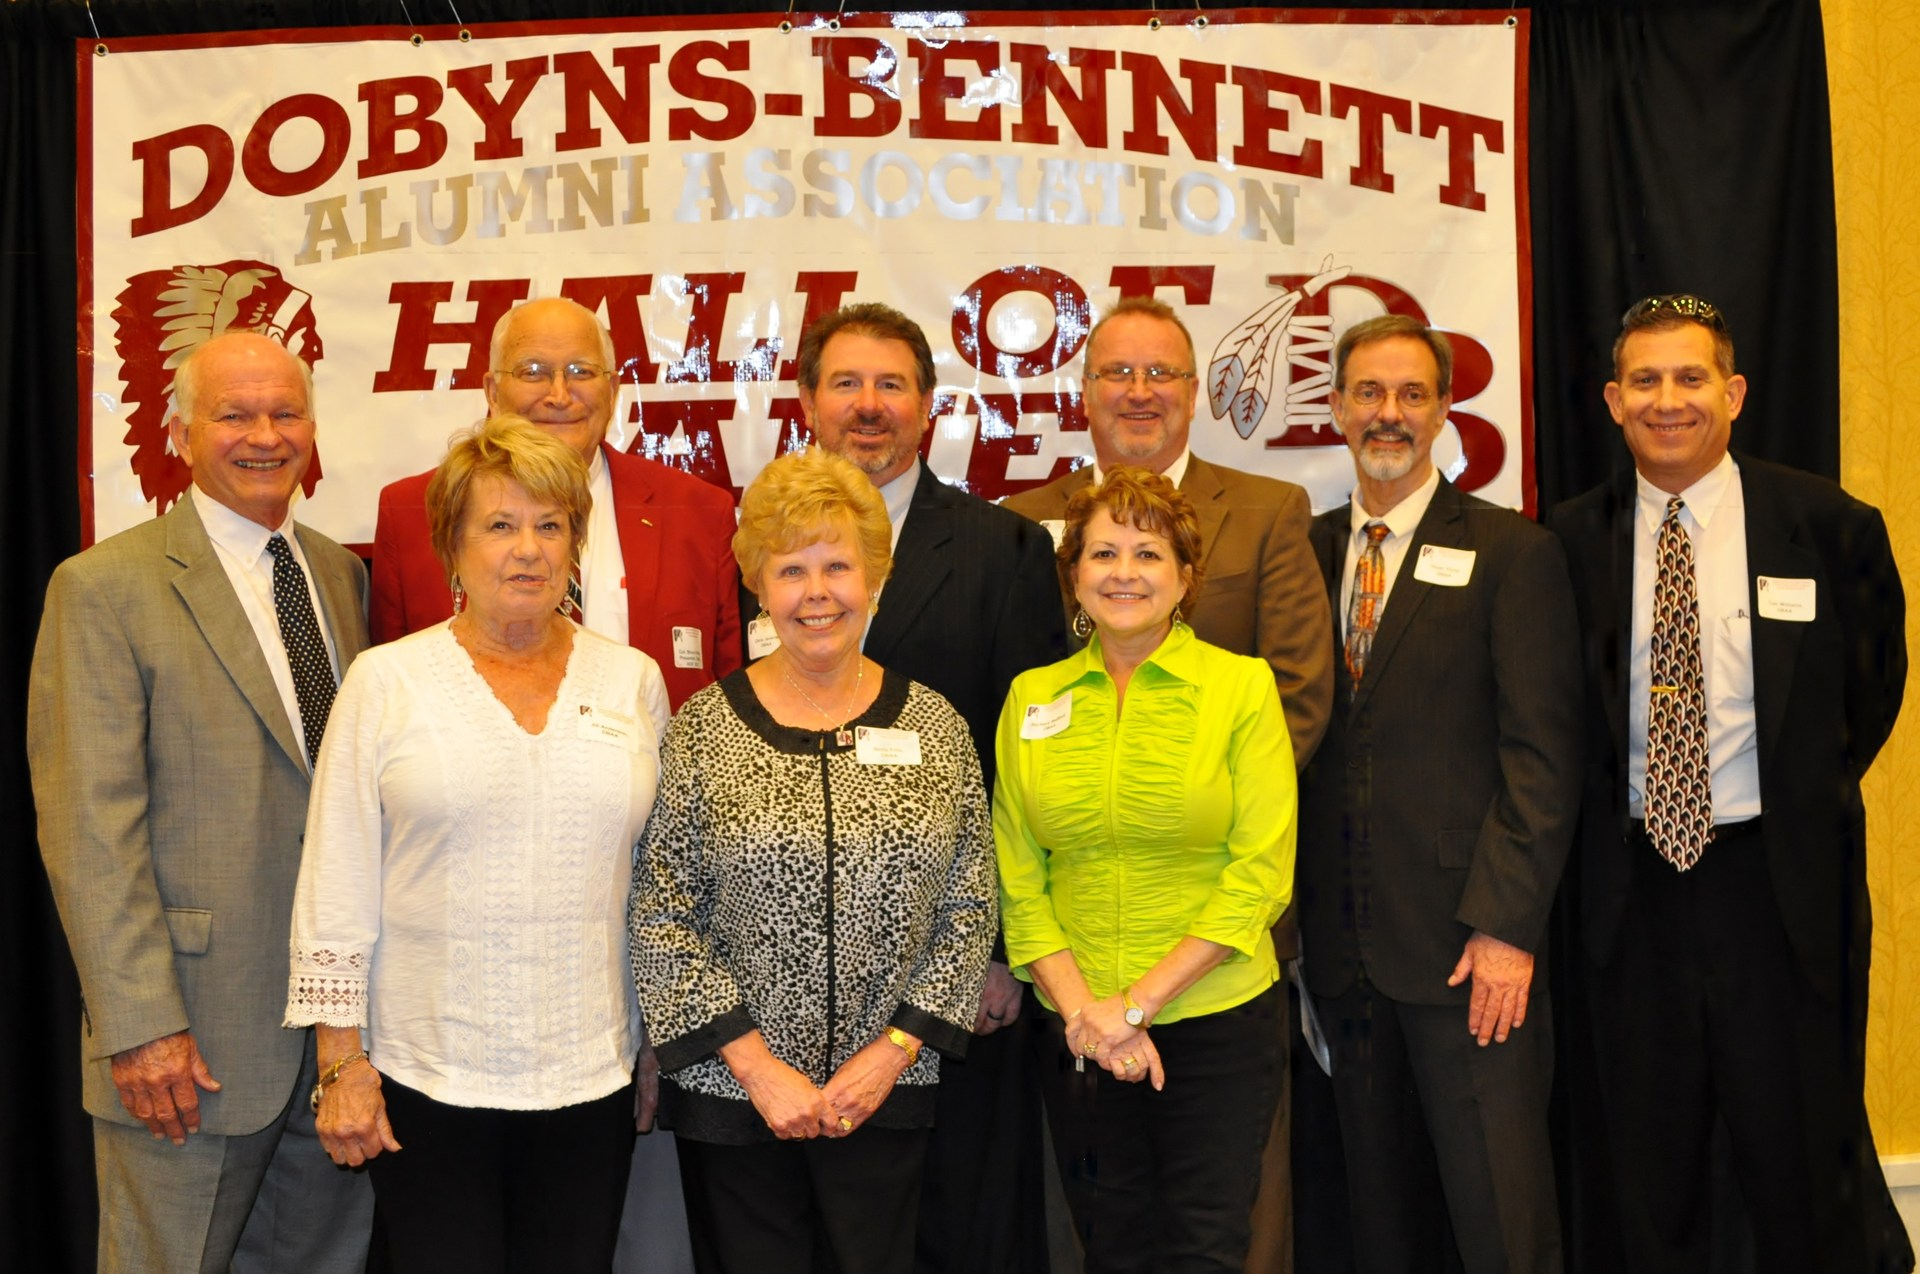 DBHS Alumni Association Board of Directors